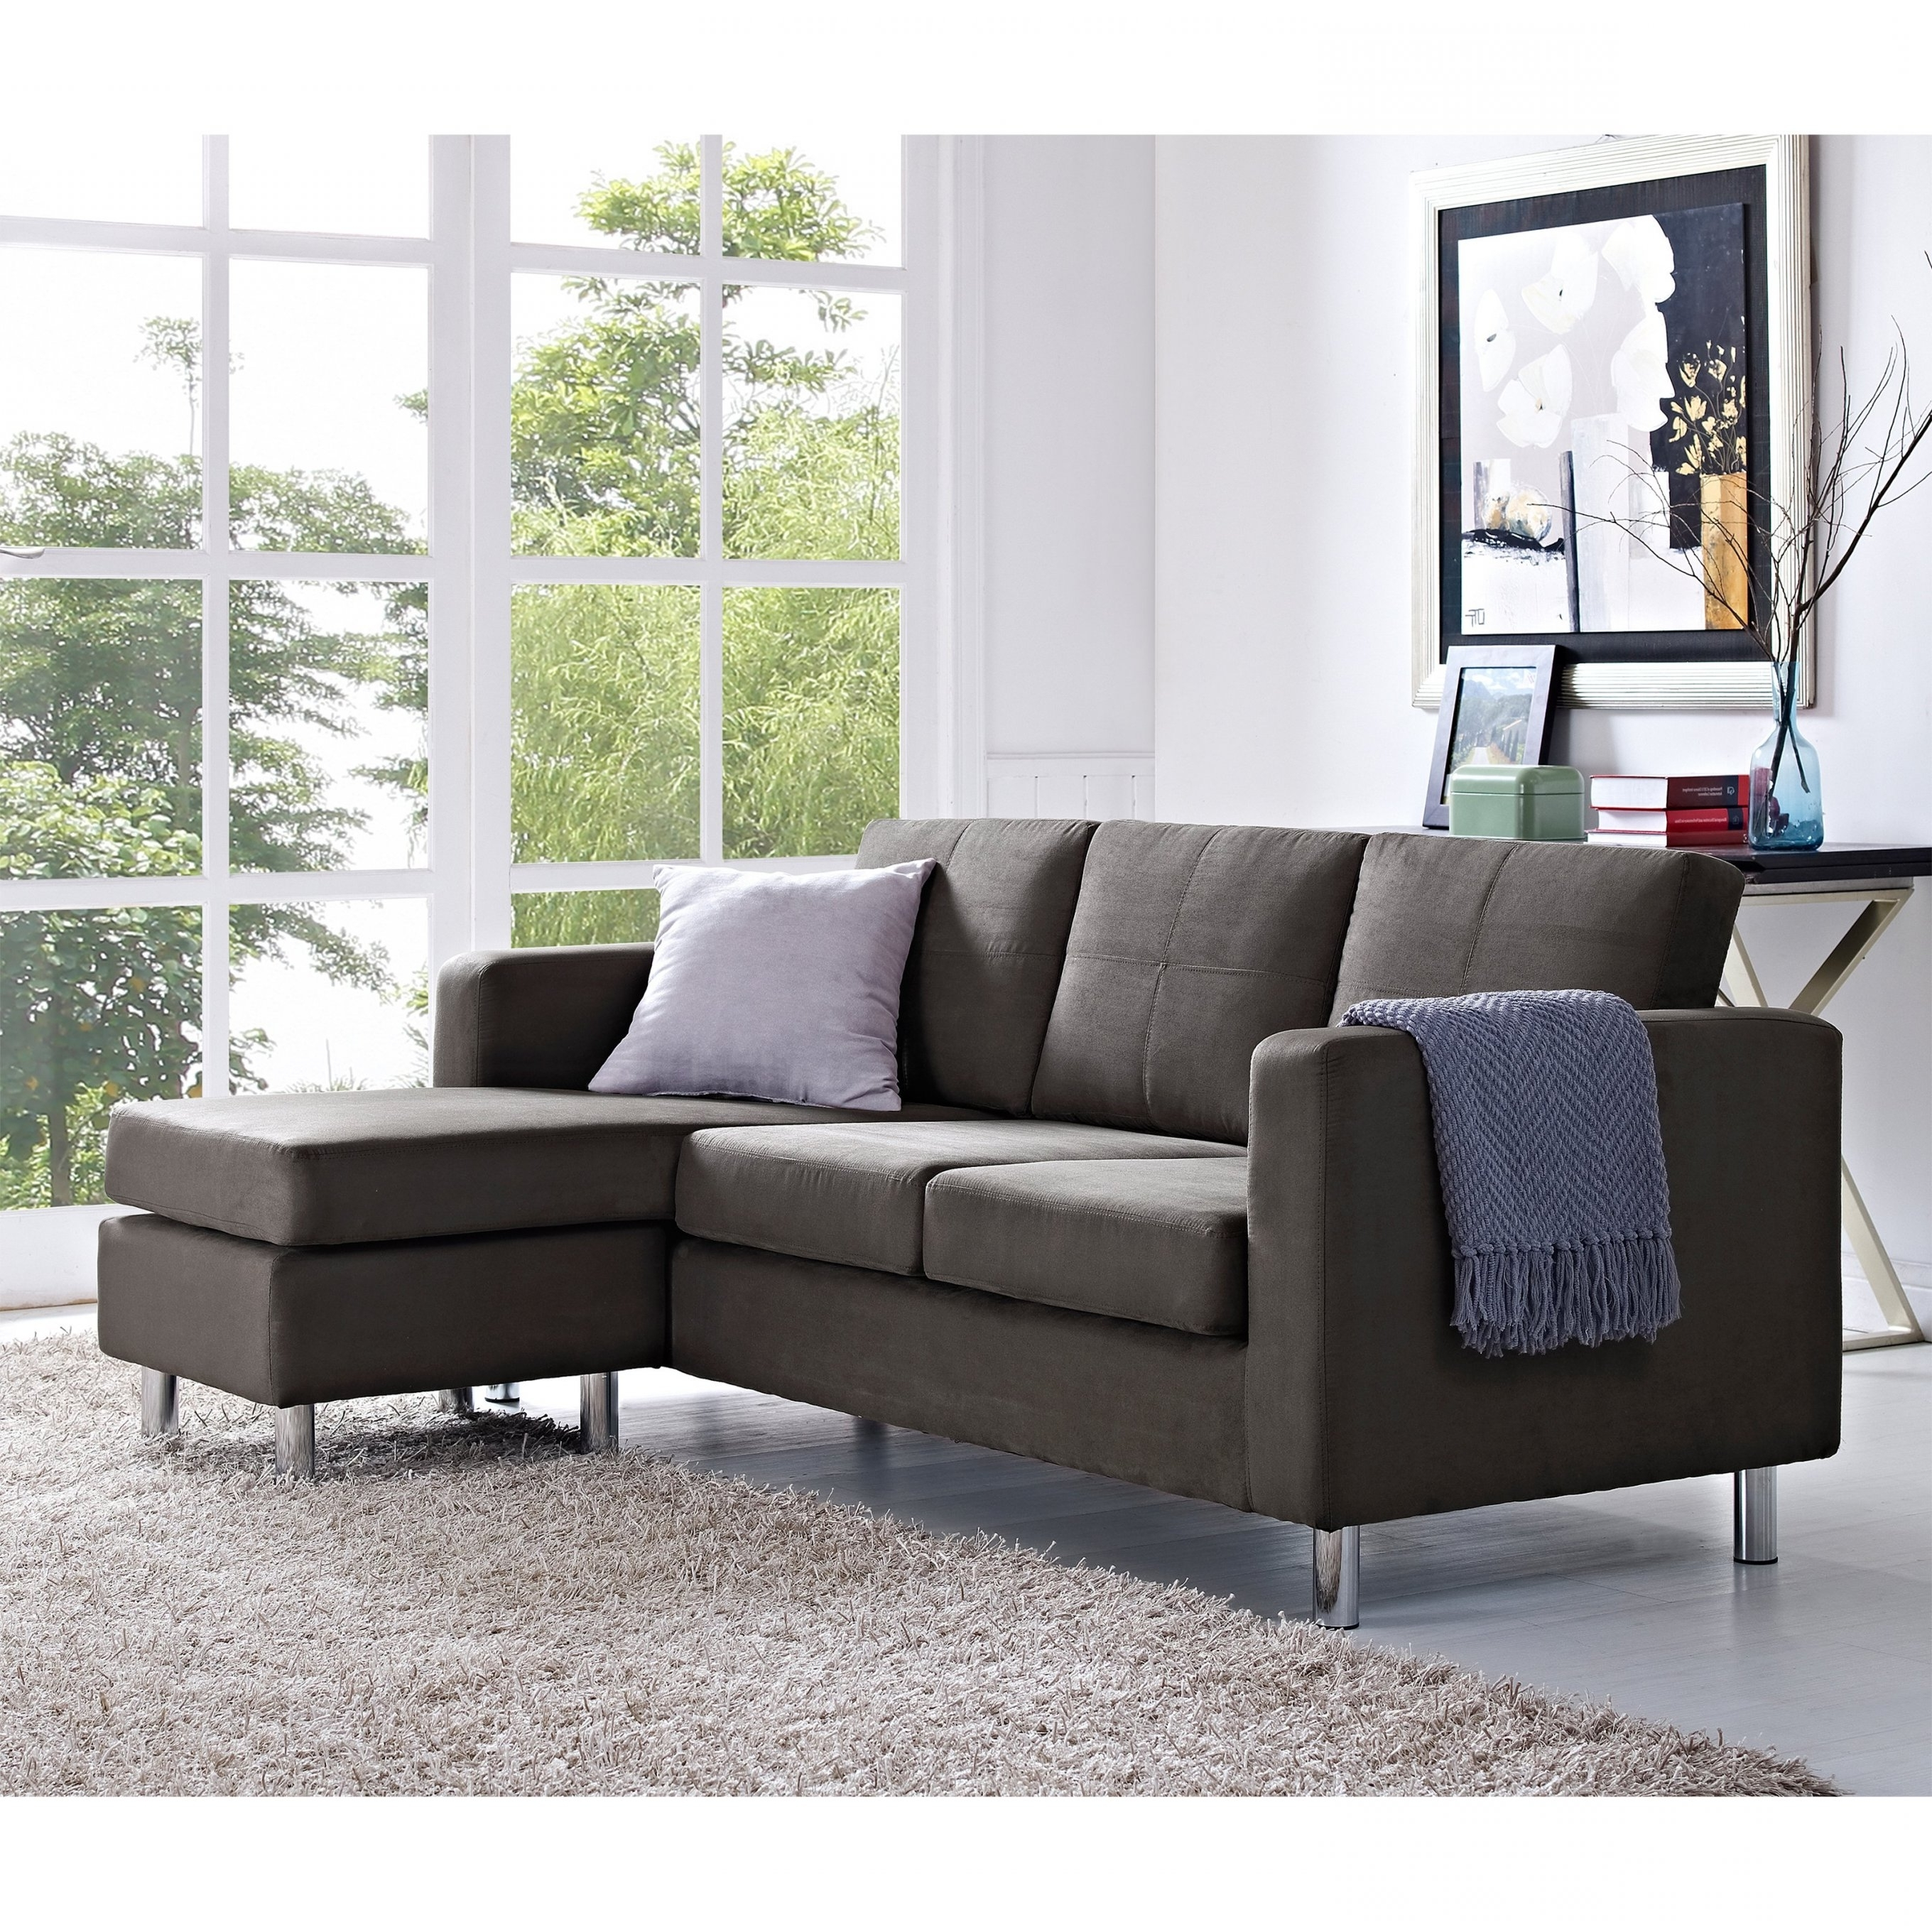 Modern Sectional Sofas For Small Spaces Inside Recent Sectional Sofas For Small Spaces Plan (View 8 of 15)